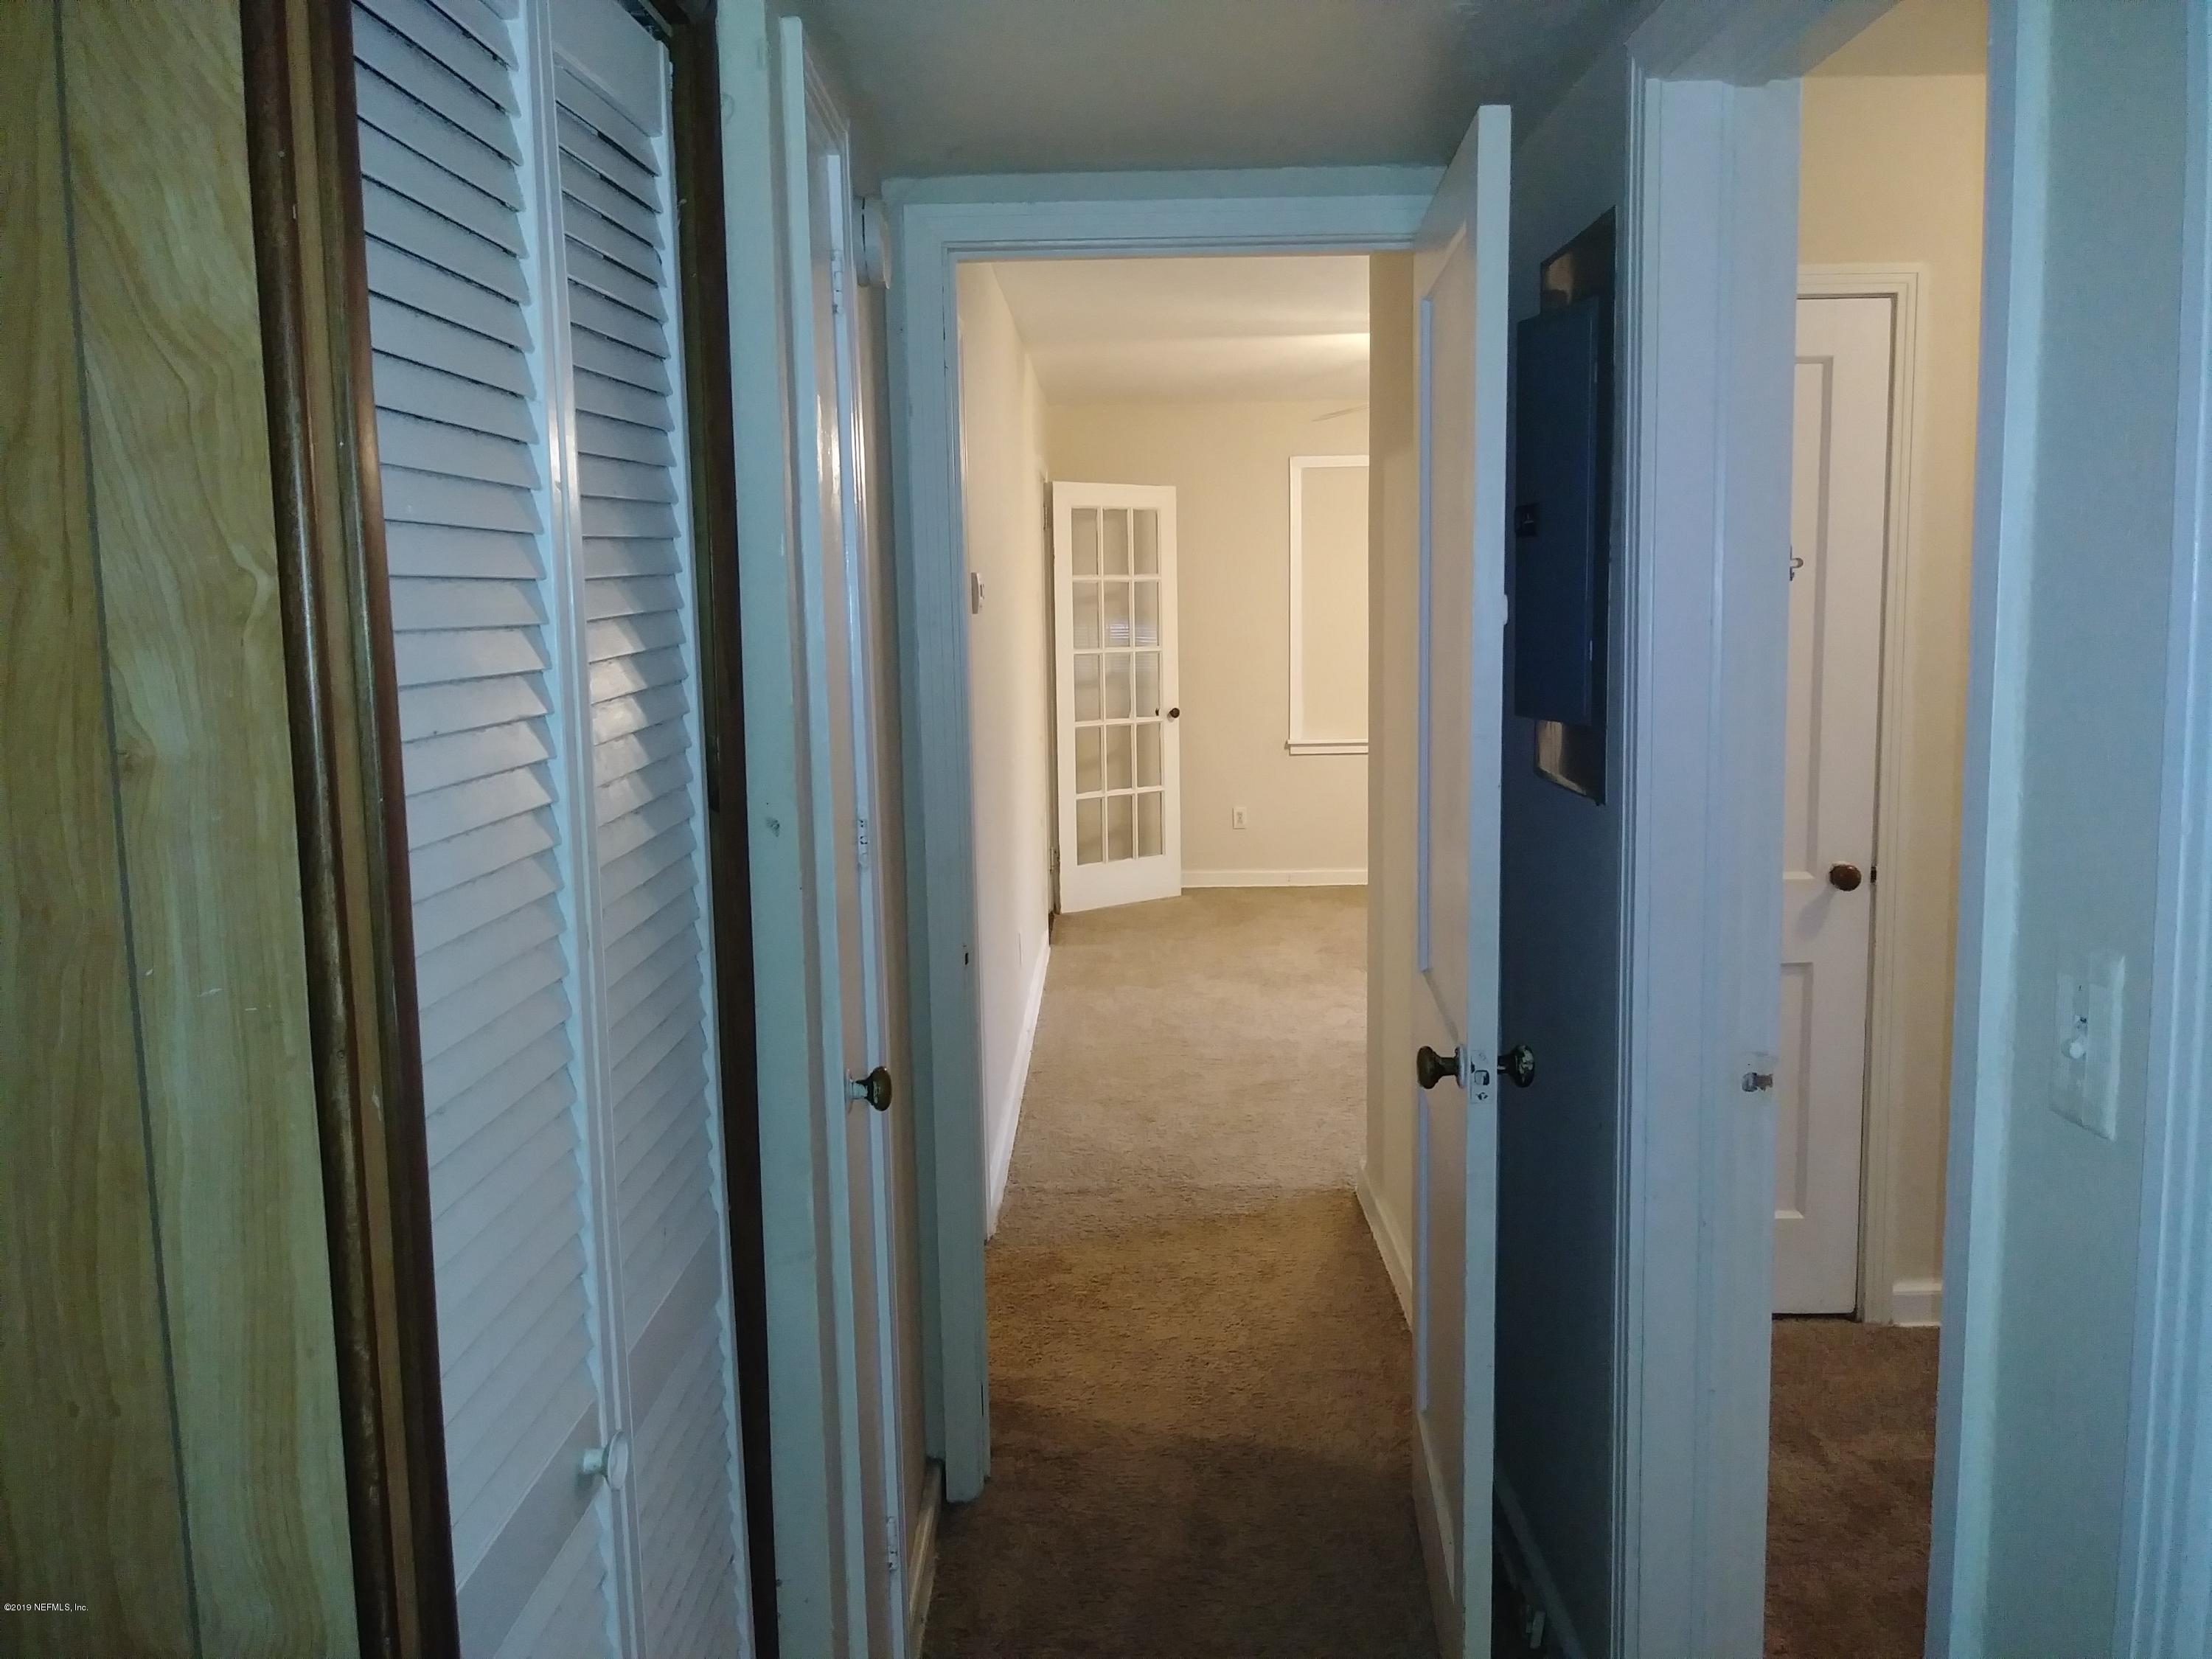 2161 17TH, JACKSONVILLE, FLORIDA 32209, 3 Bedrooms Bedrooms, ,1 BathroomBathrooms,Investment / MultiFamily,For sale,17TH,1011193